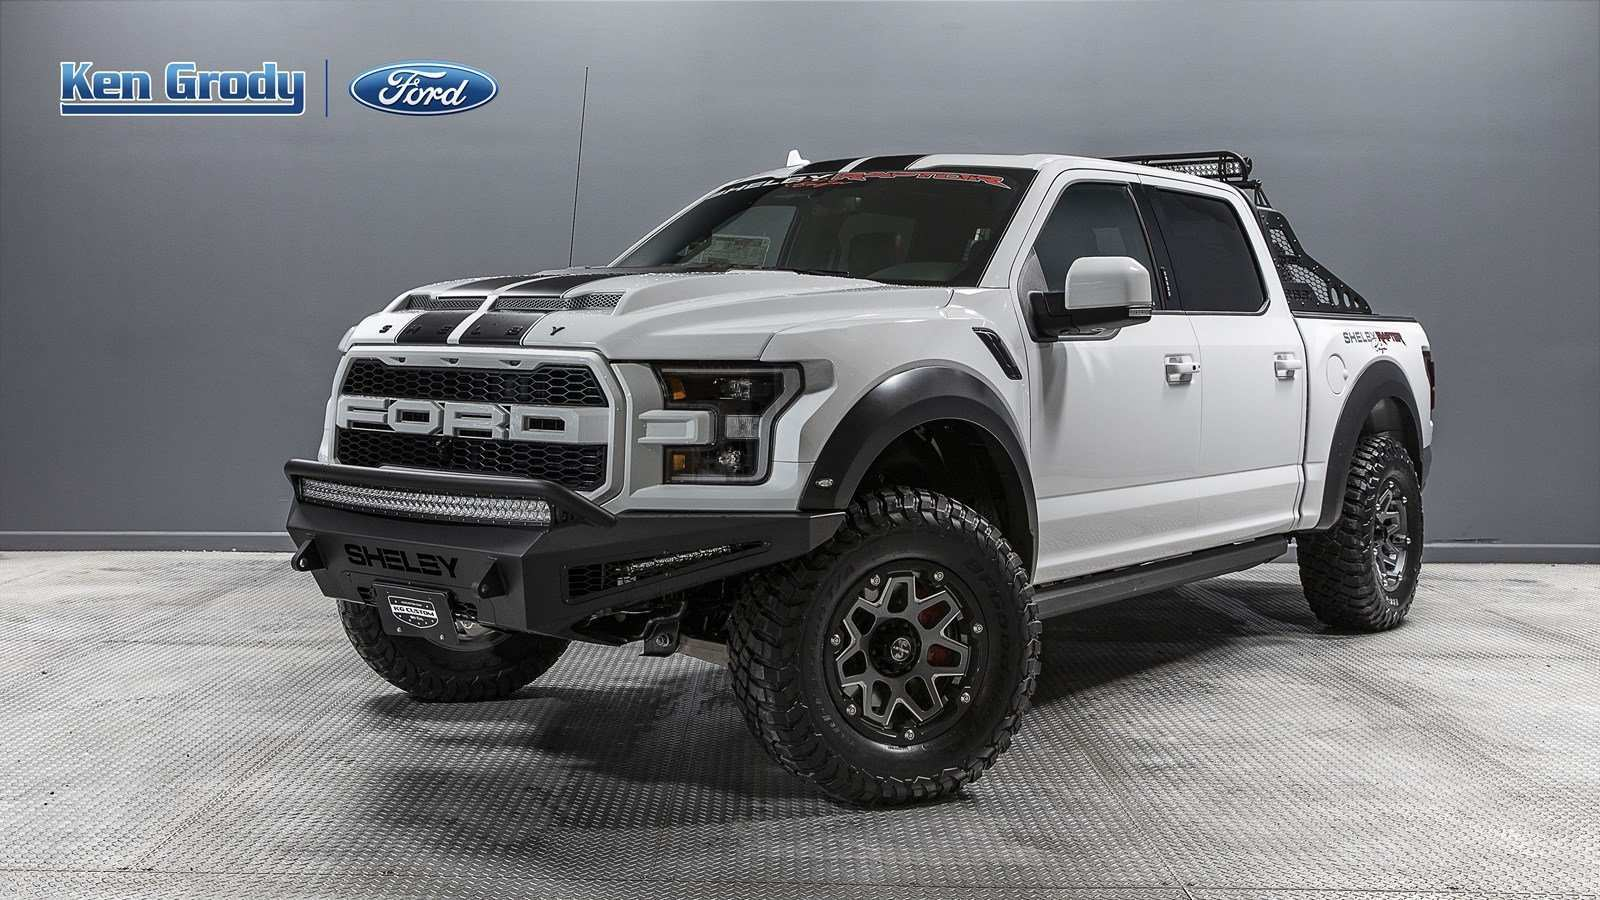 55 The Ford Shelby Raptor 2019 Specs And Review Research New by Ford Shelby Raptor 2019 Specs And Review